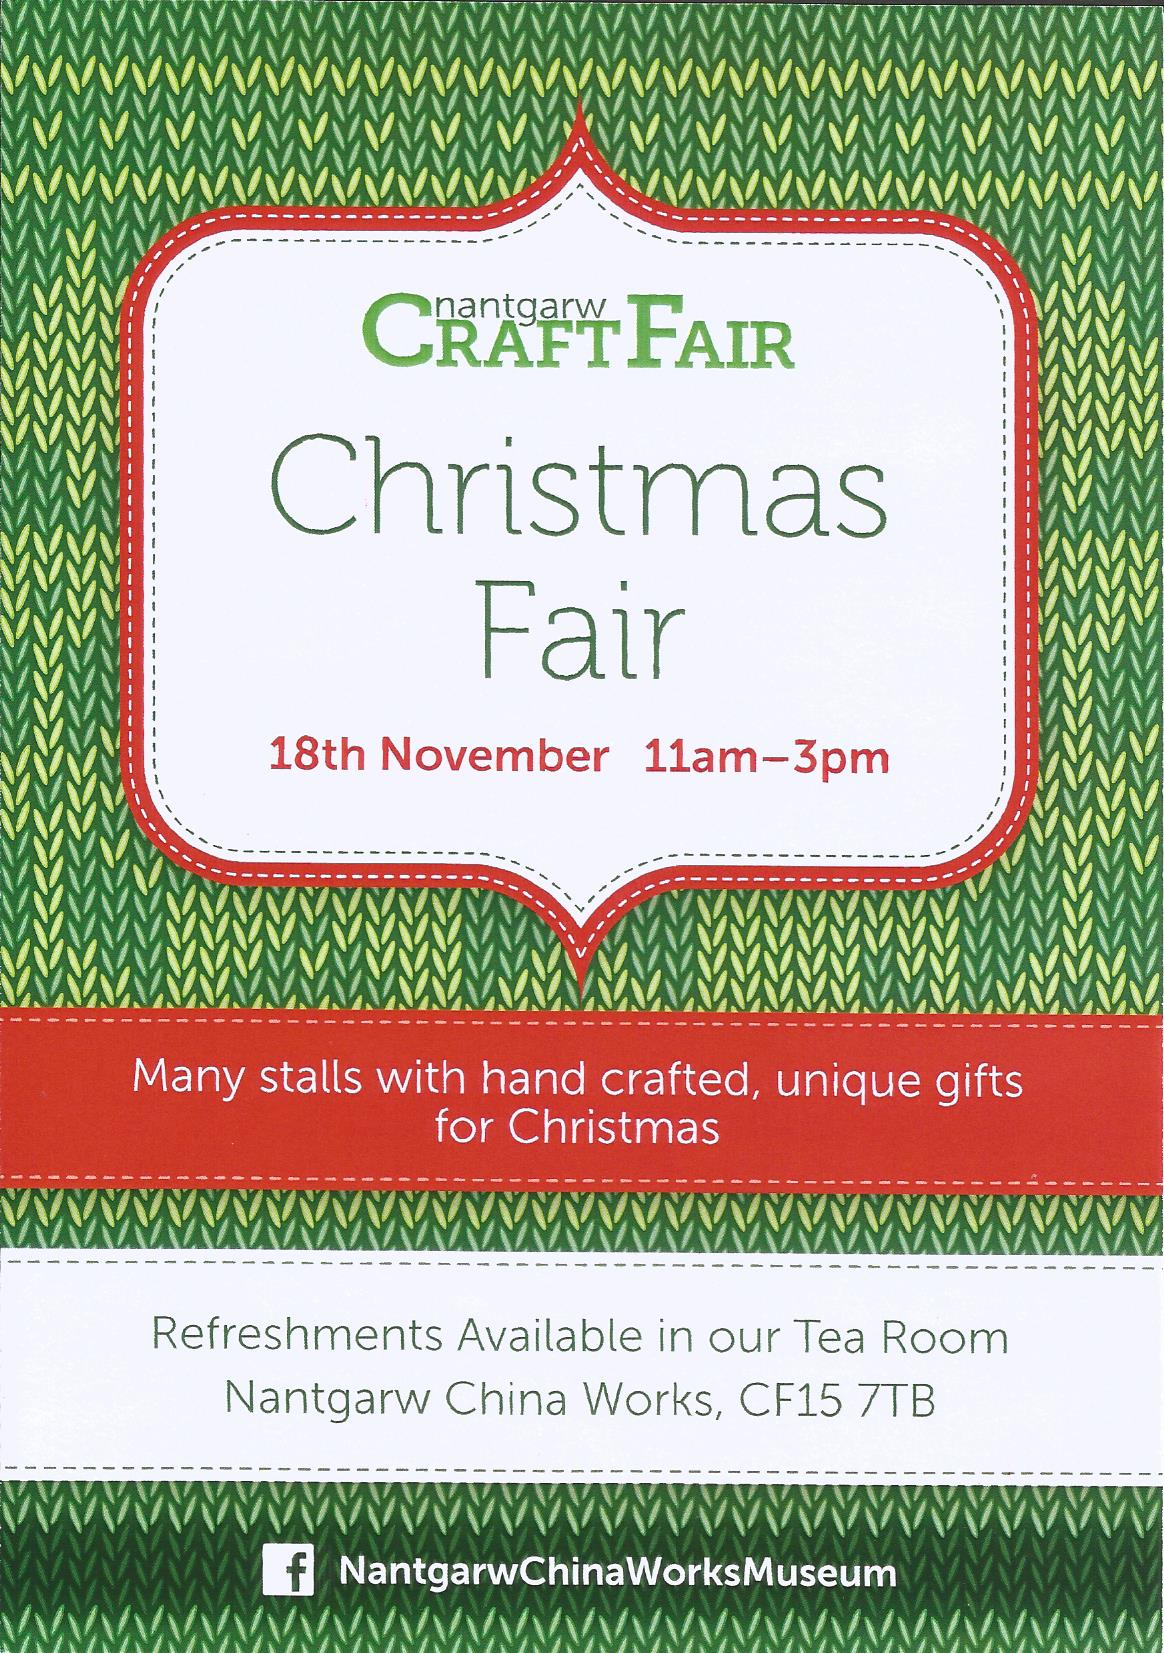 Nantgarw Christmas Craft Fair